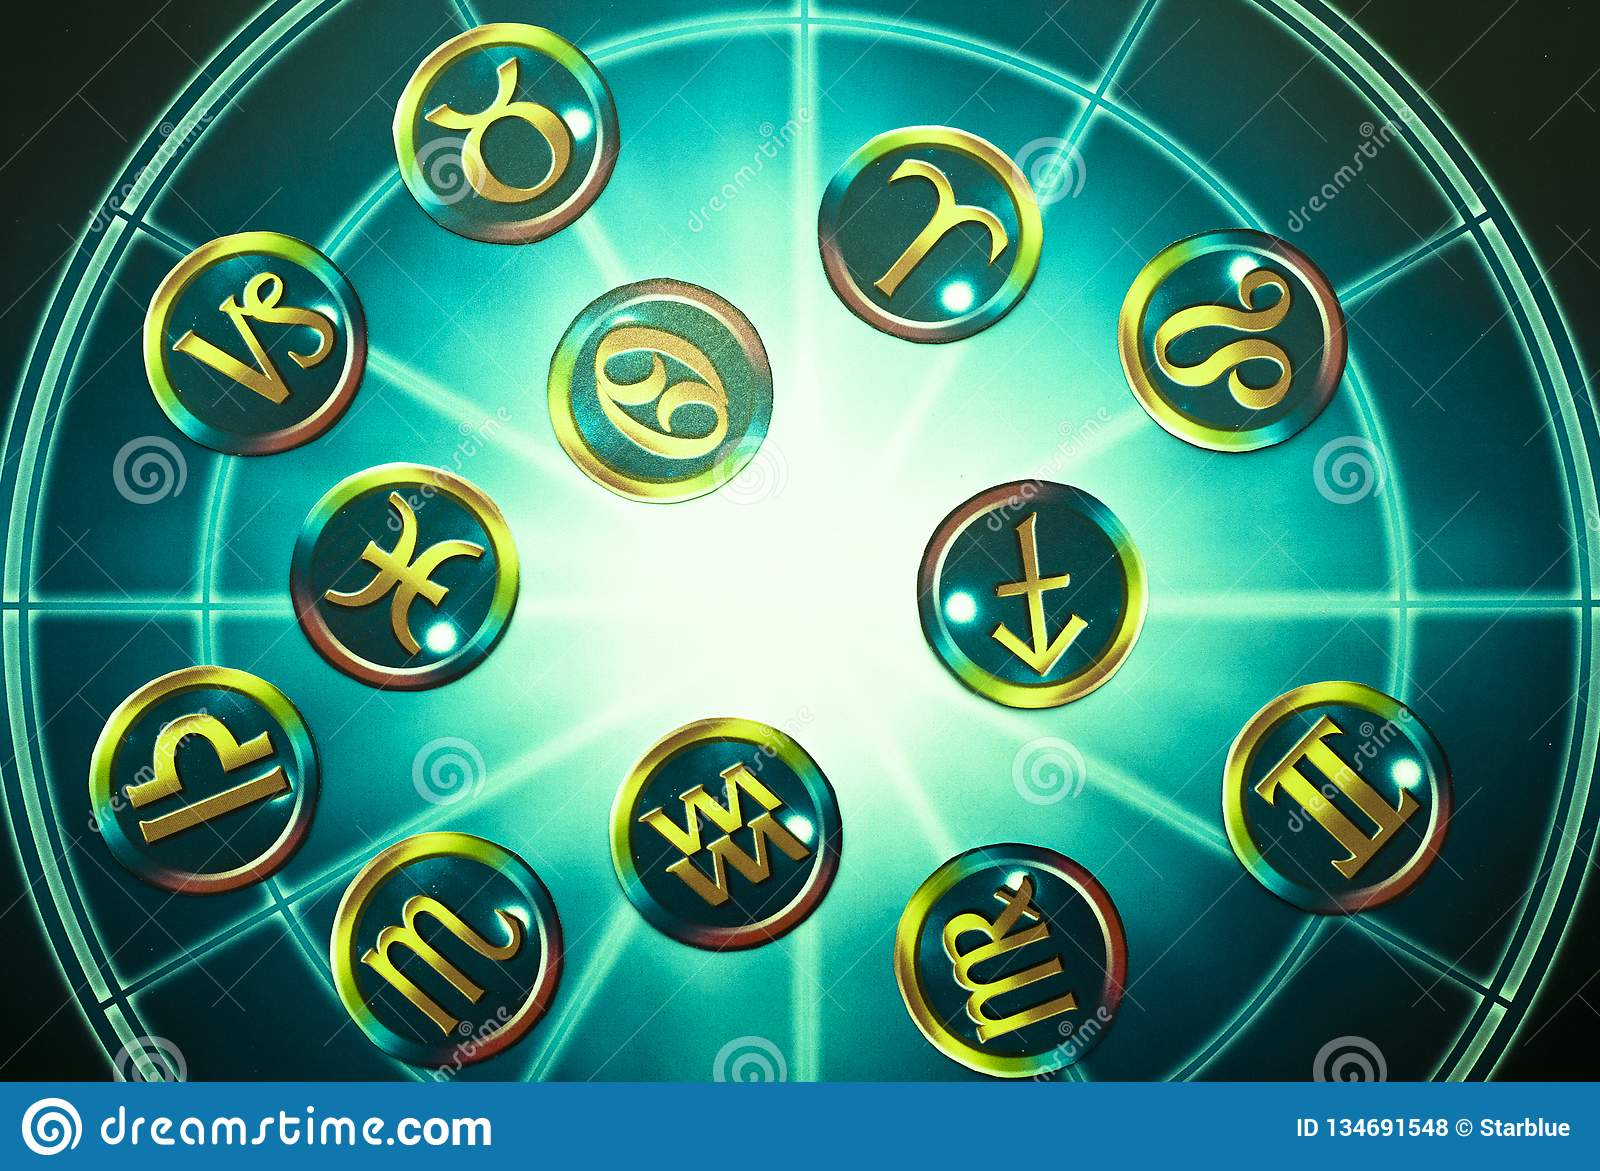 Green yellow zodiac signs over blue horoscope like astrology concept